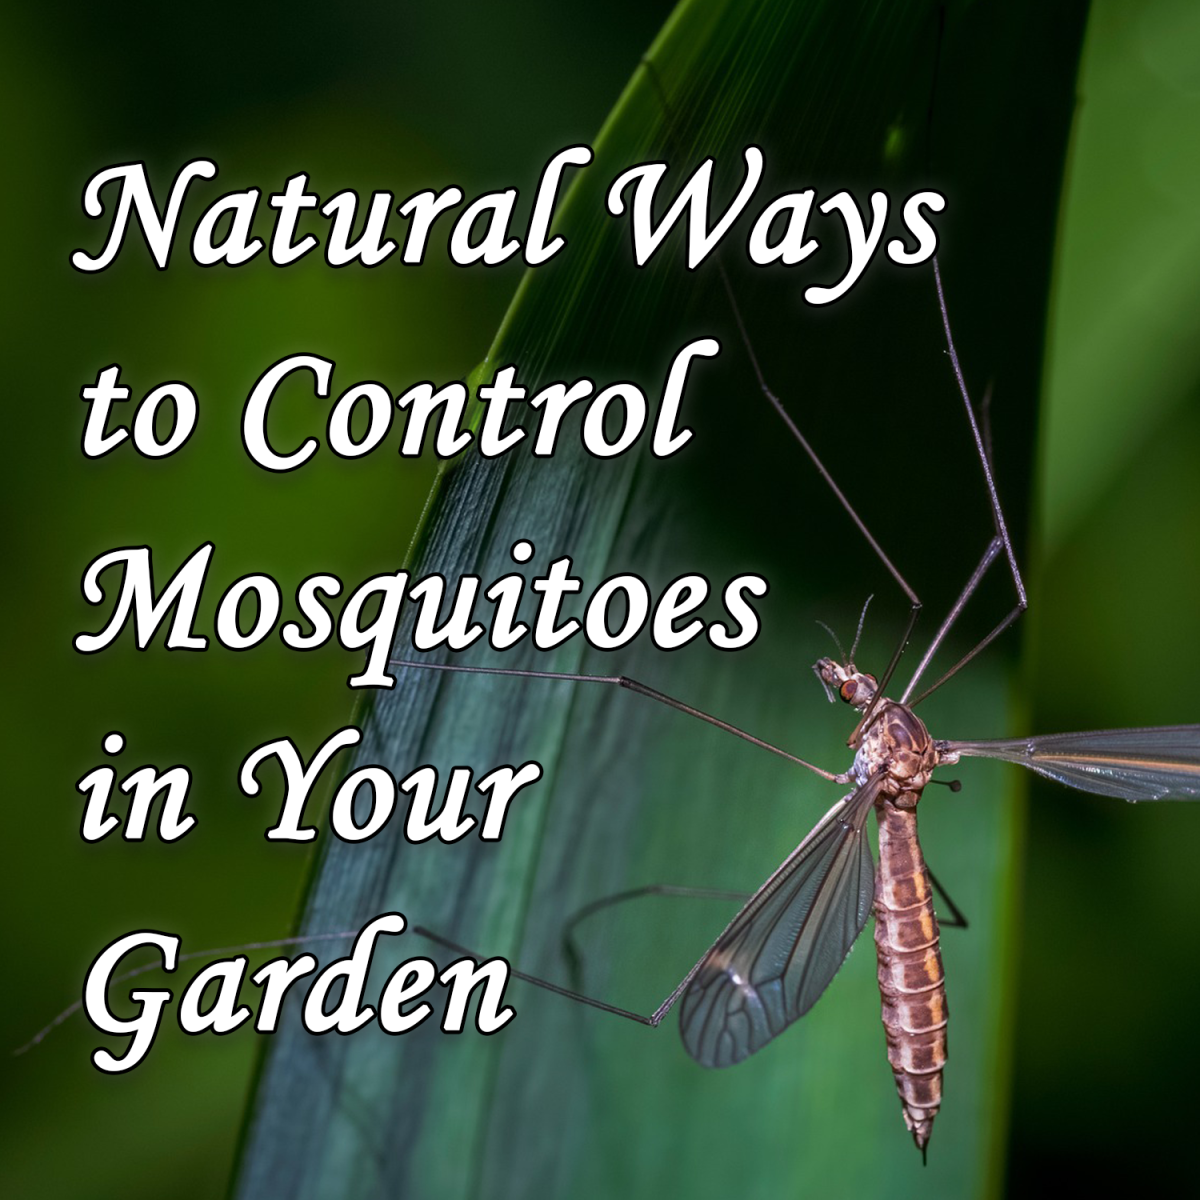 Natural Ways to Control Mosquitoes in Your Garden